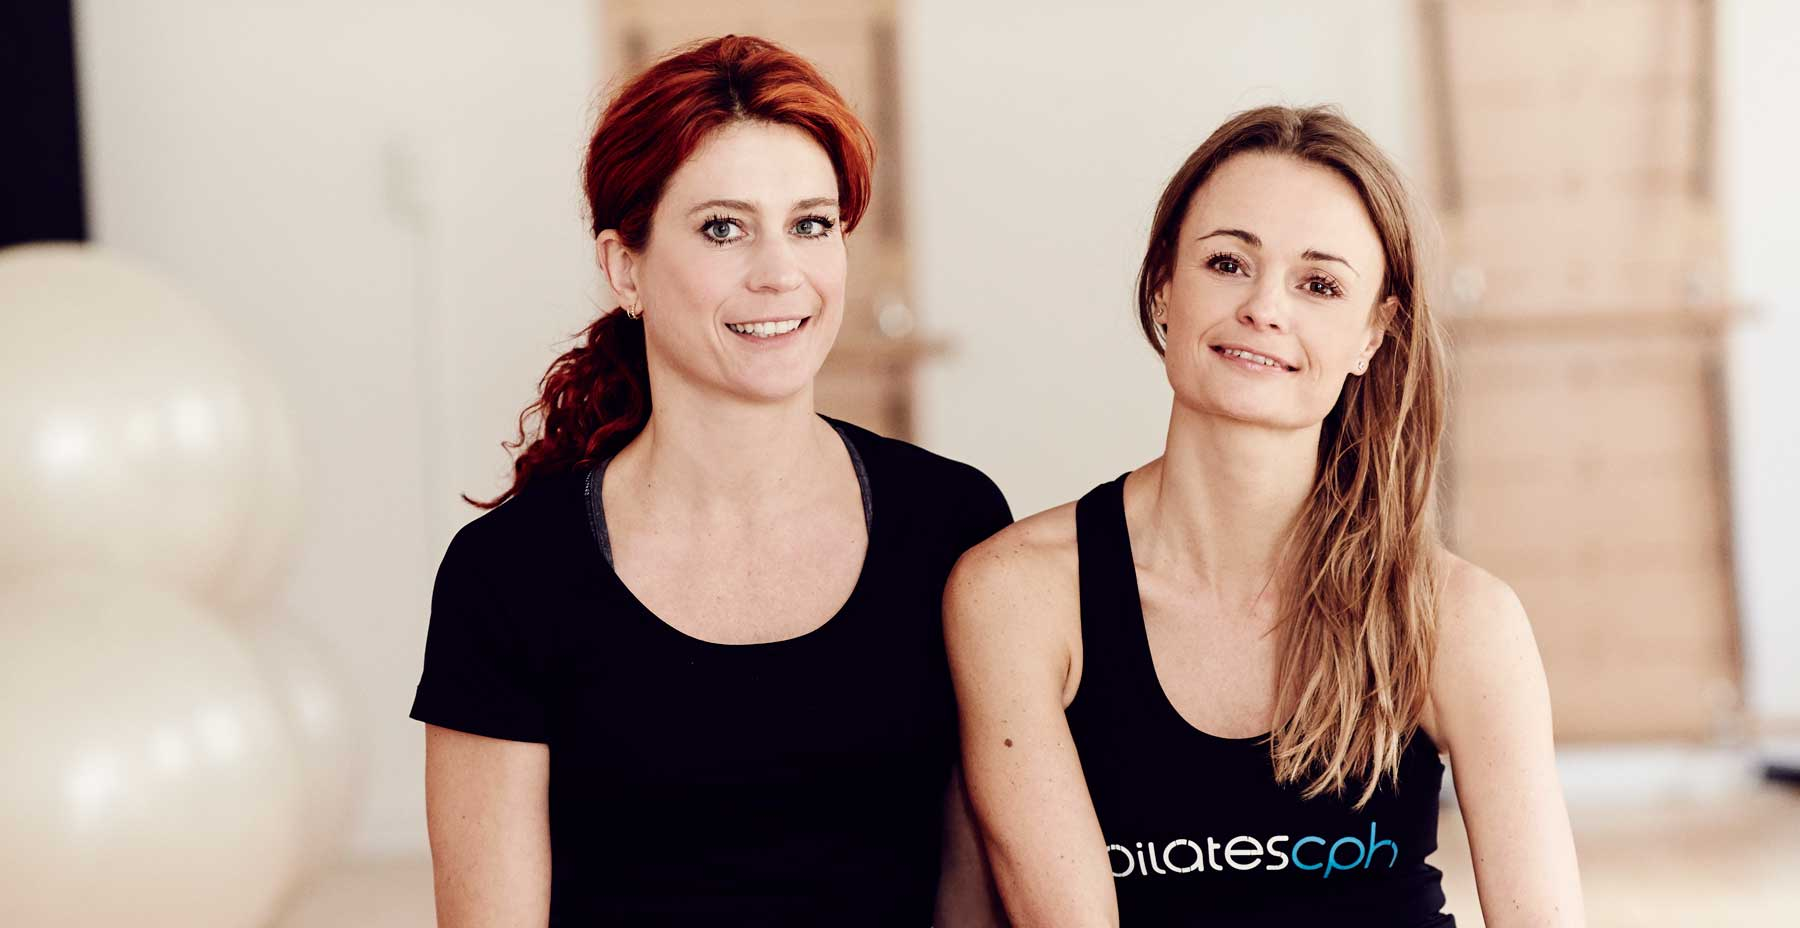 Camilla Bækholm & Gitte Peirano - owners and instructors of Pilates Cph